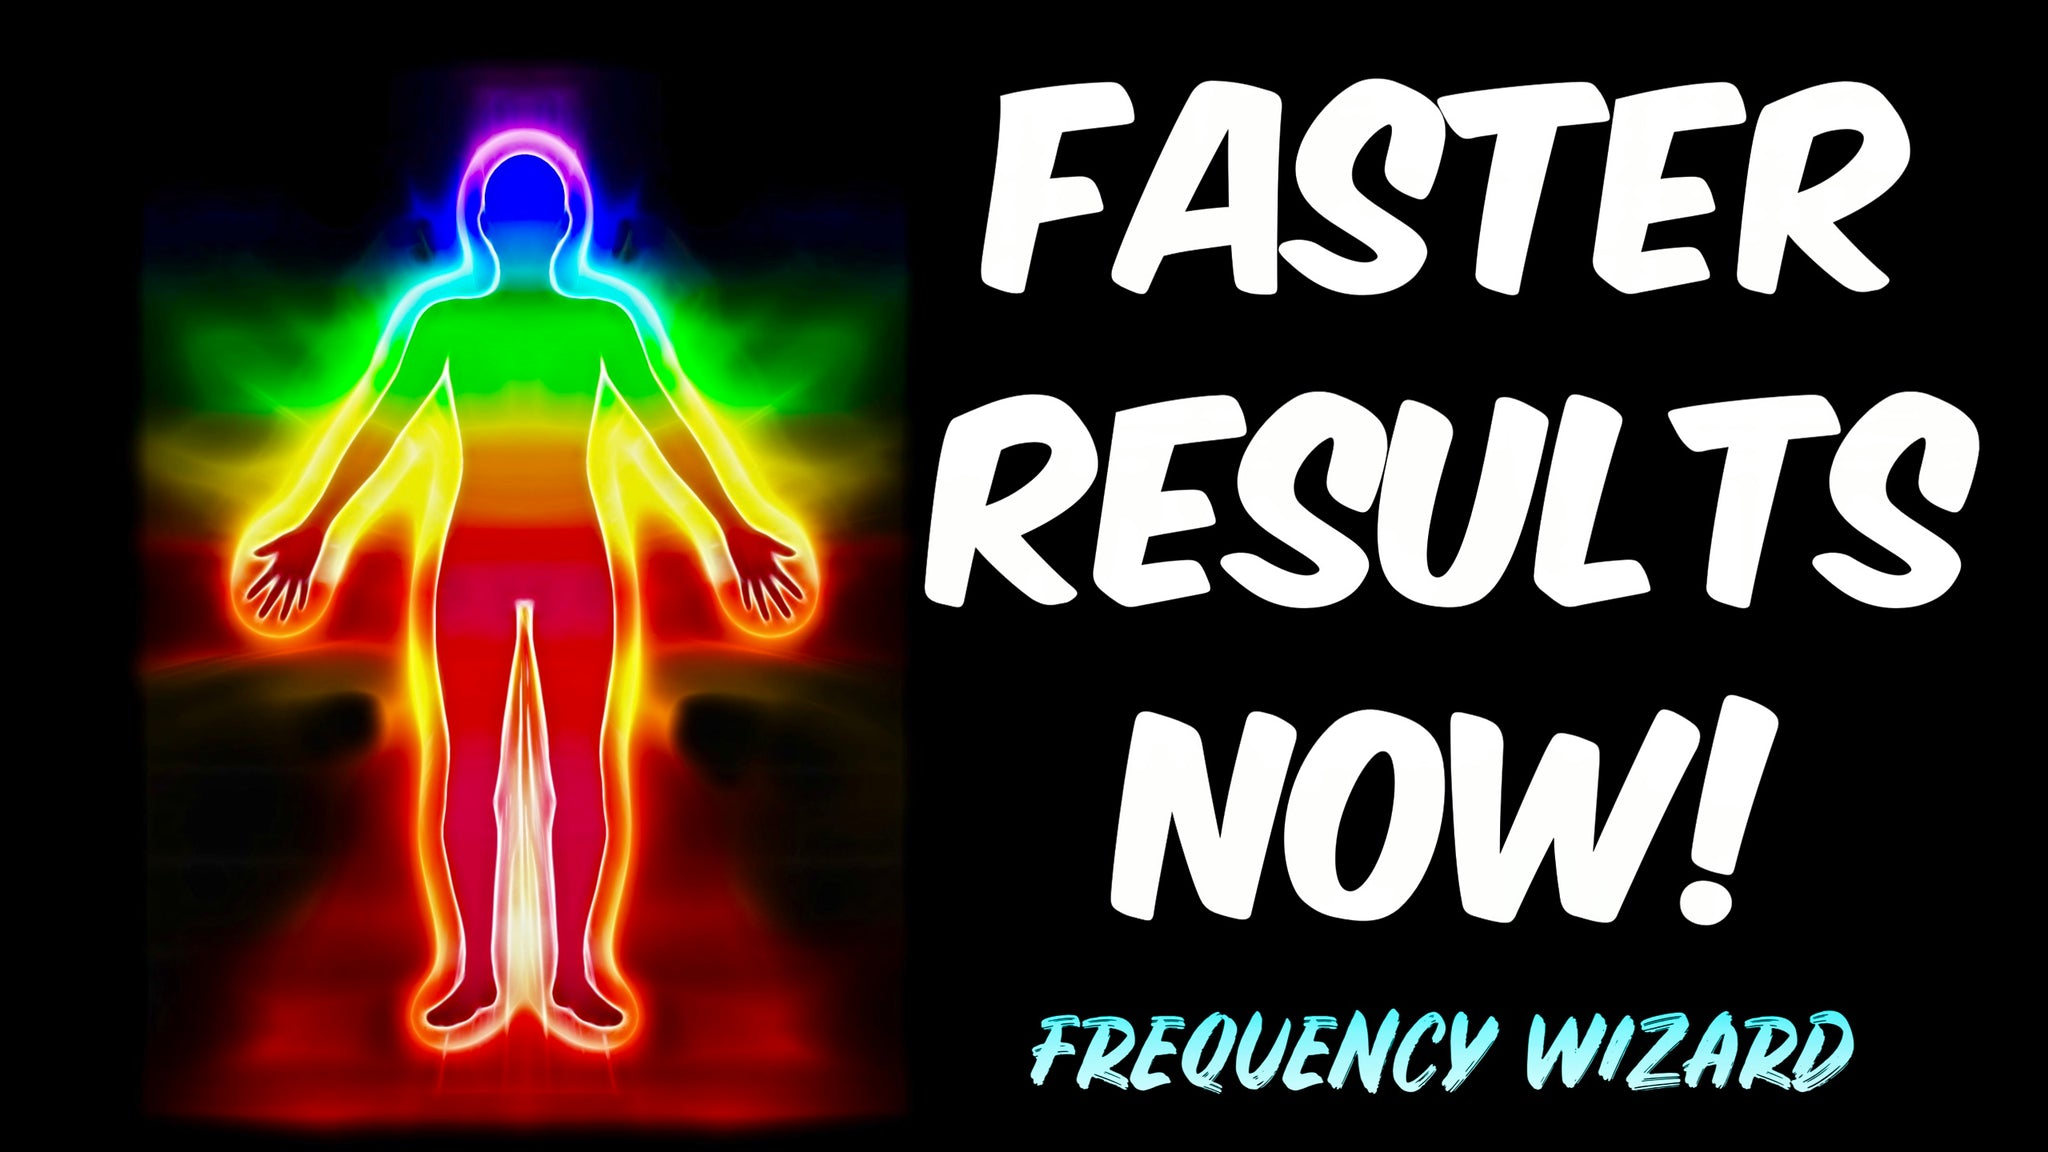 REMOVE ALL AURIC BLOCKAGES - GET FASTER RESULTS! ATTRACT WEALTH, LOVE, POSITIVE VIBES! FREQUENCY WIZARD